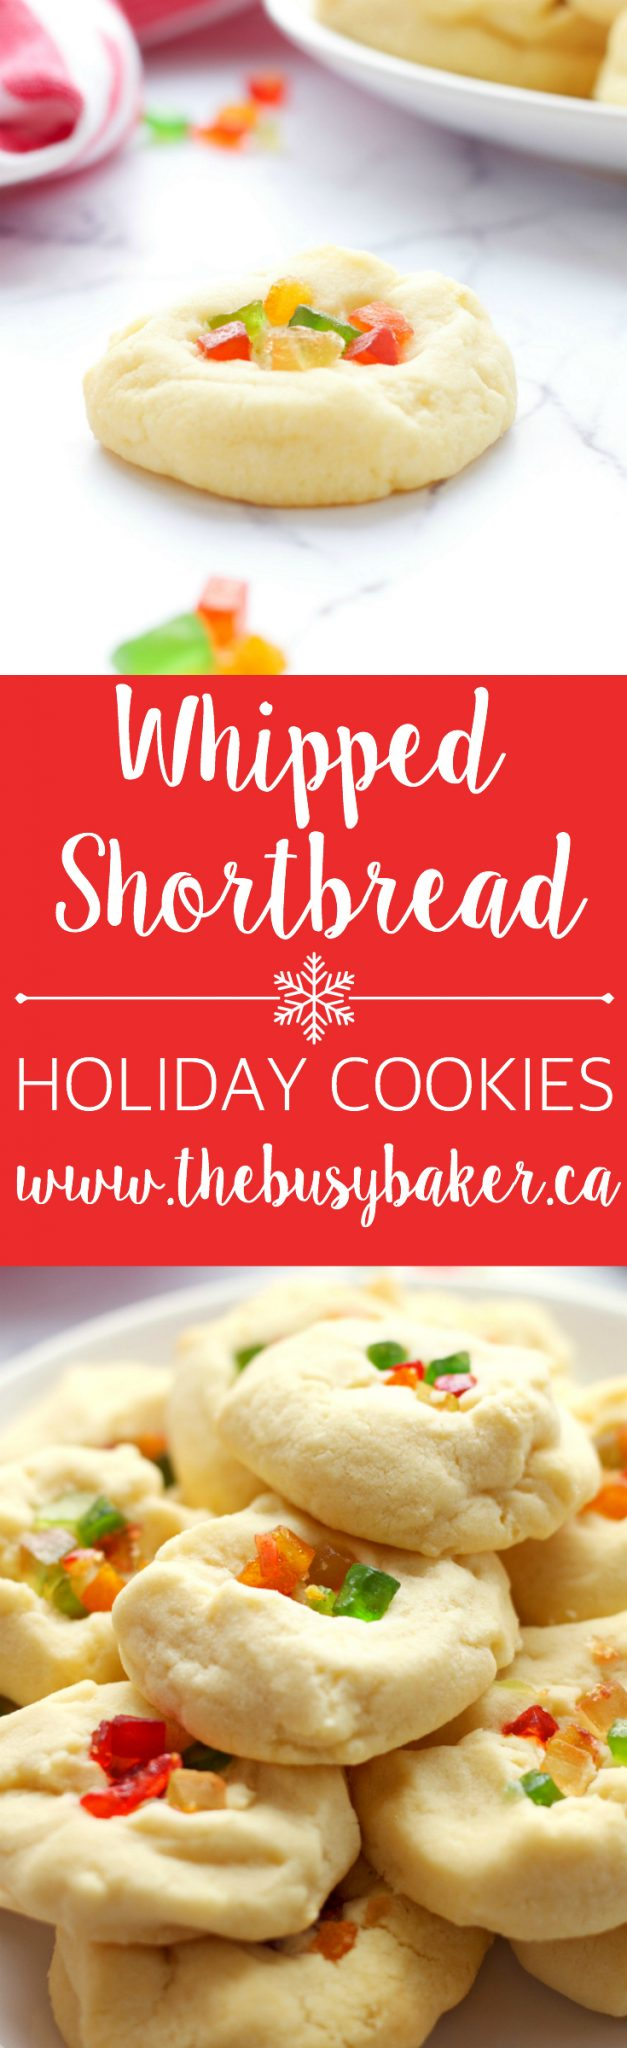 These Whipped Shortbread Holiday Cookies are the perfect Christmas shortbread cookie! They're easy to make and turn out perfectly every time! Recipe from thebusybaker.ca! via @busybakerblog